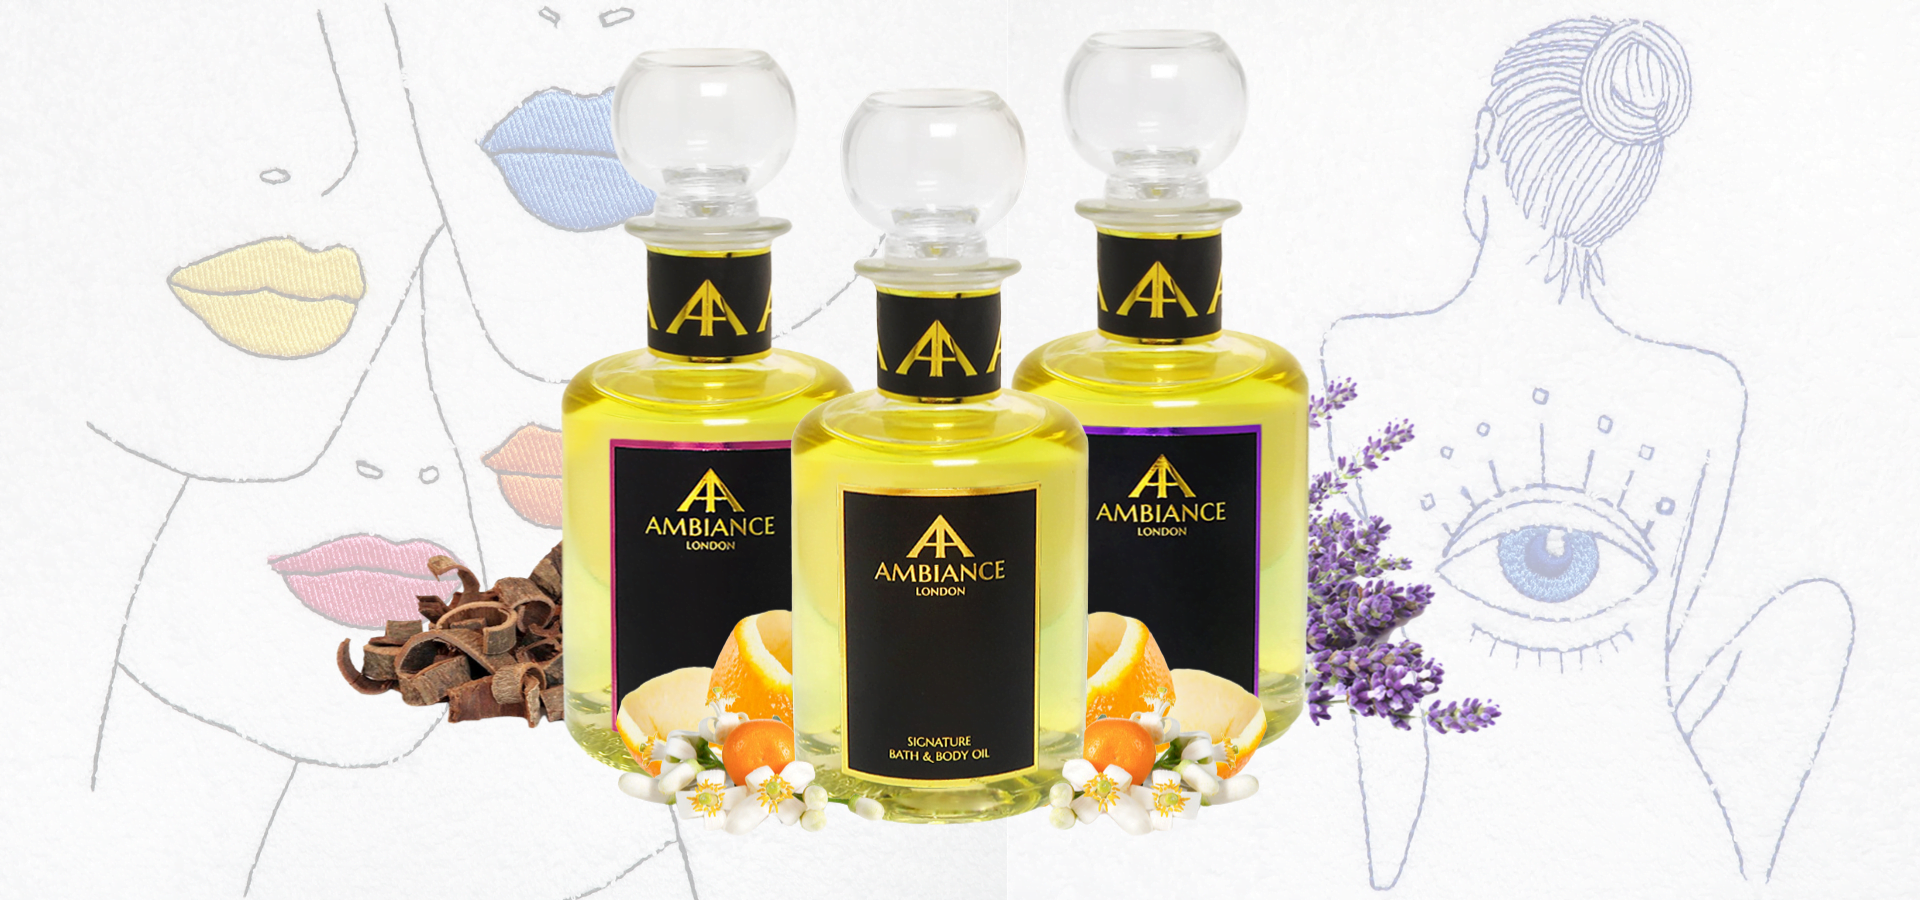 luxury bath oils - luxury body oils - ancienne ambiance scented delights for self care home spa